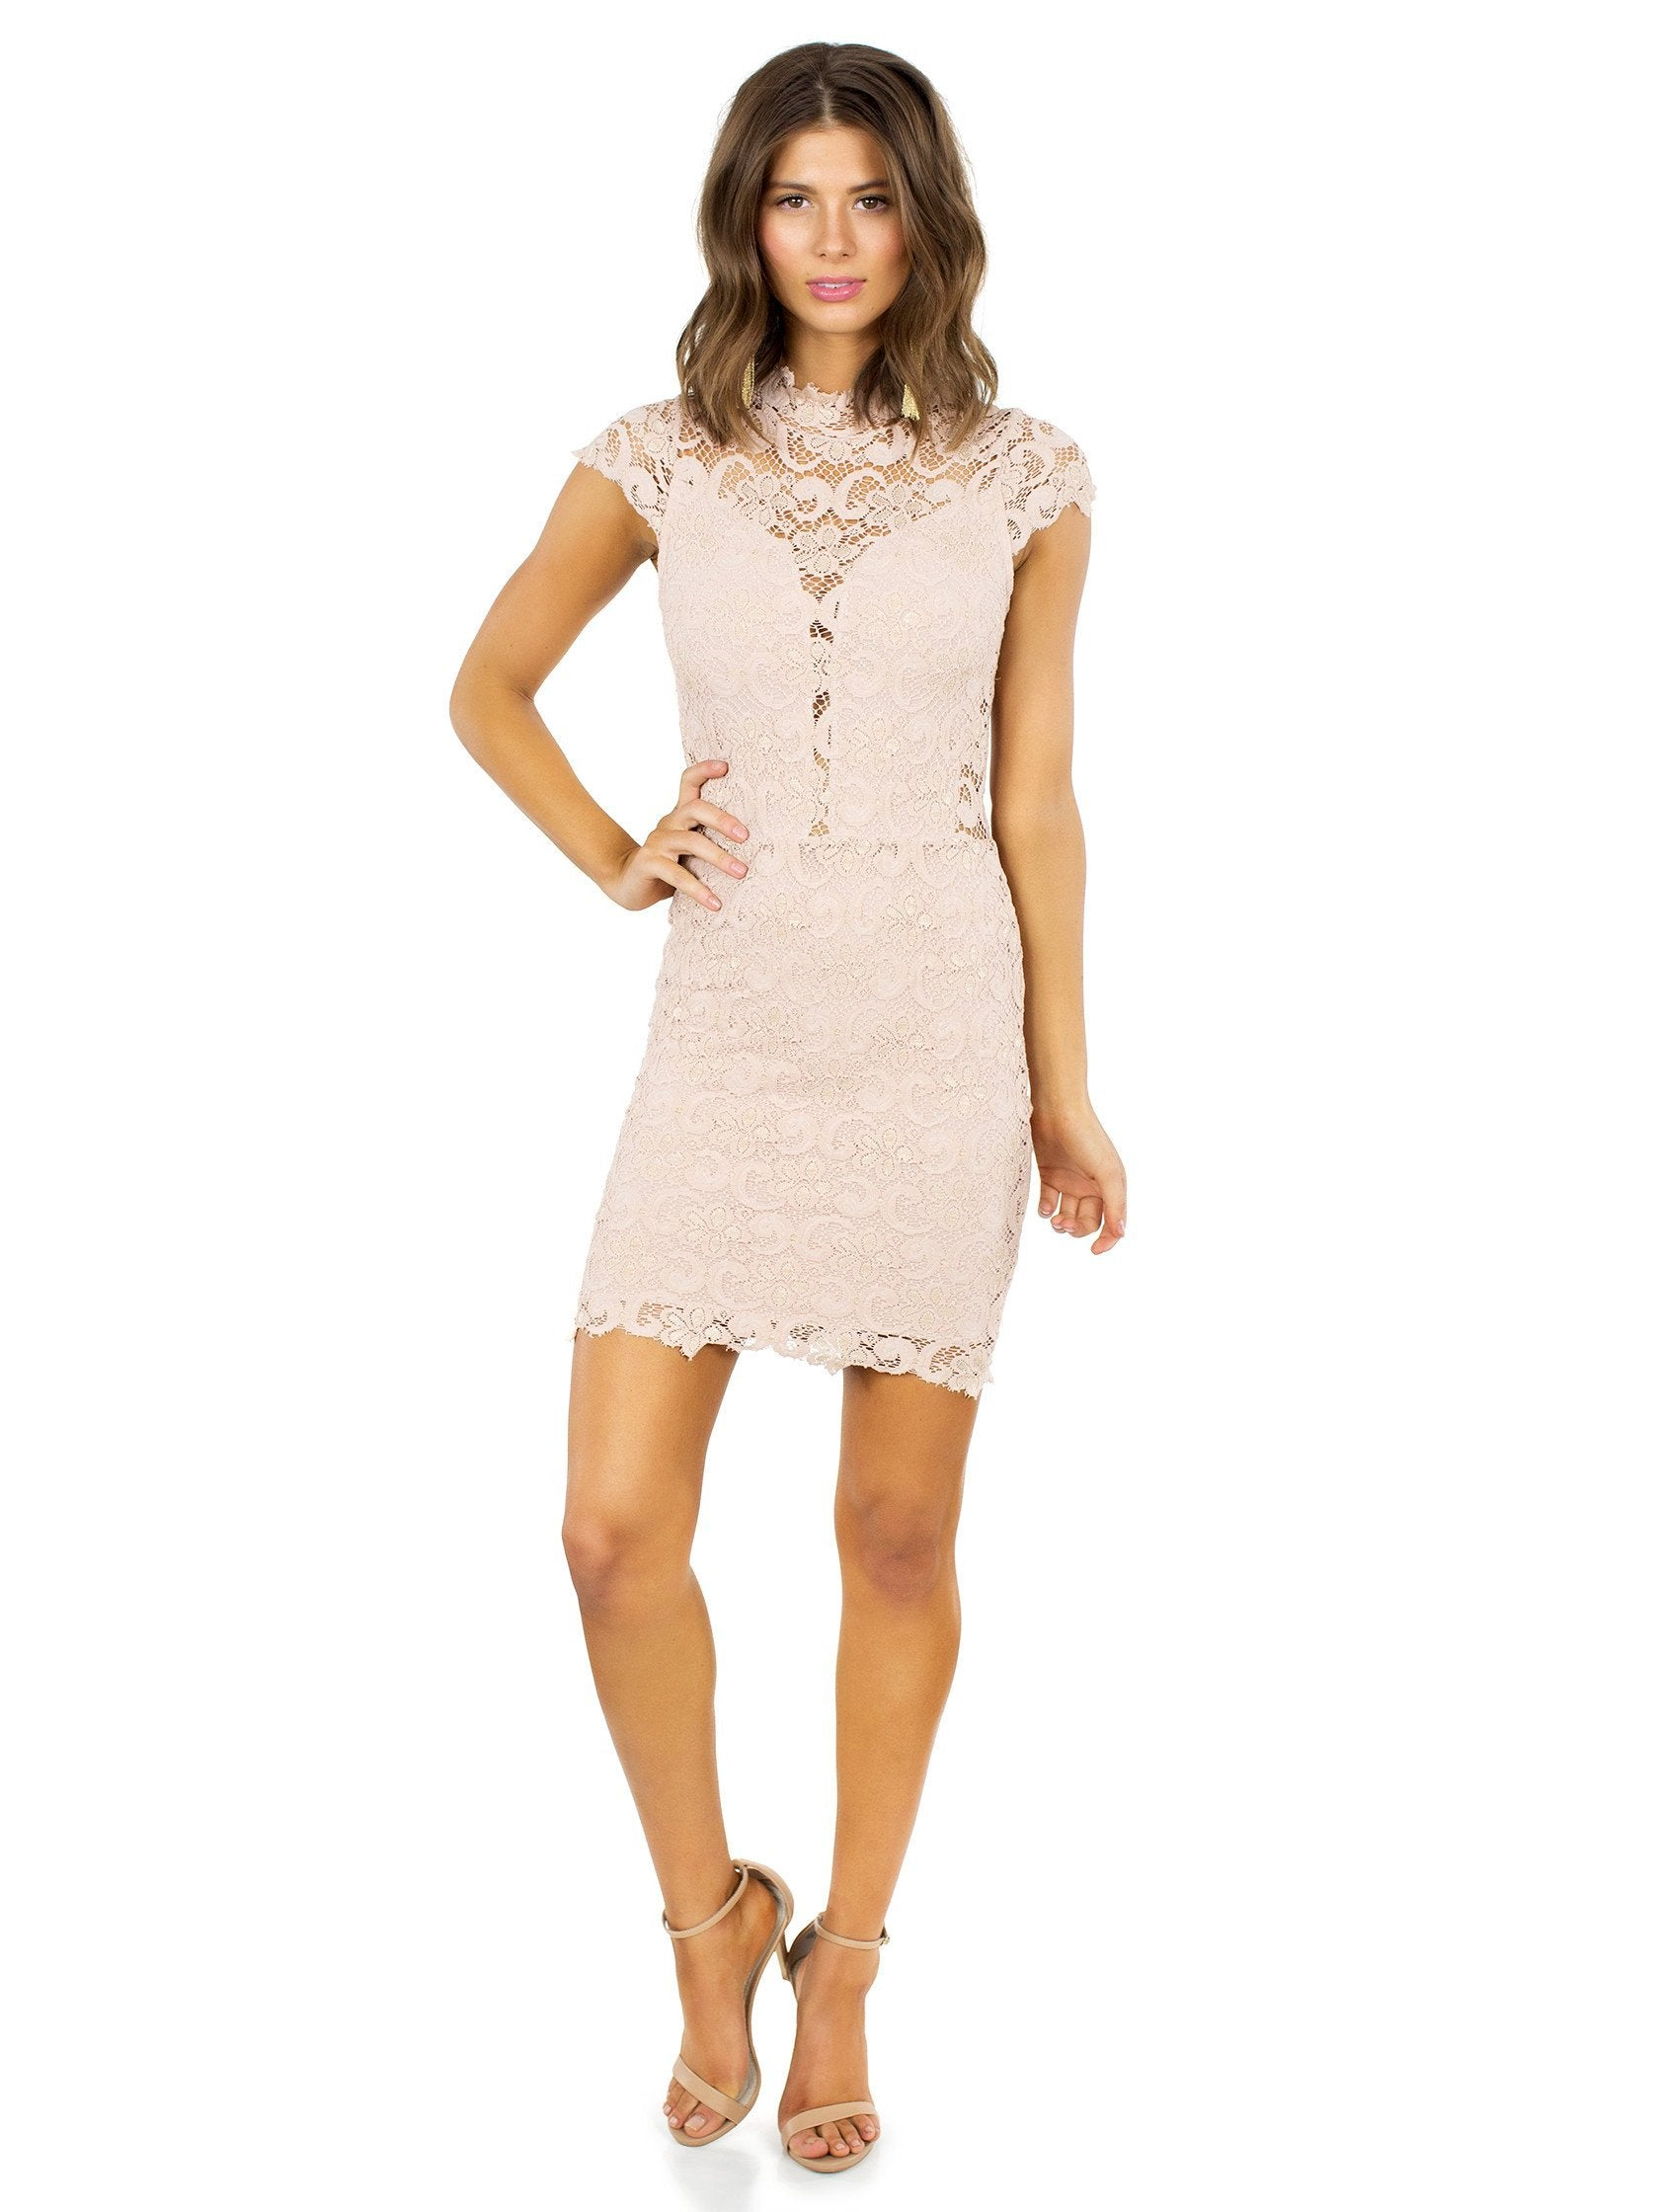 Girl outfit in a dress rental from Nightcap Clothing called Dixie Lace 16th District Mini Dress